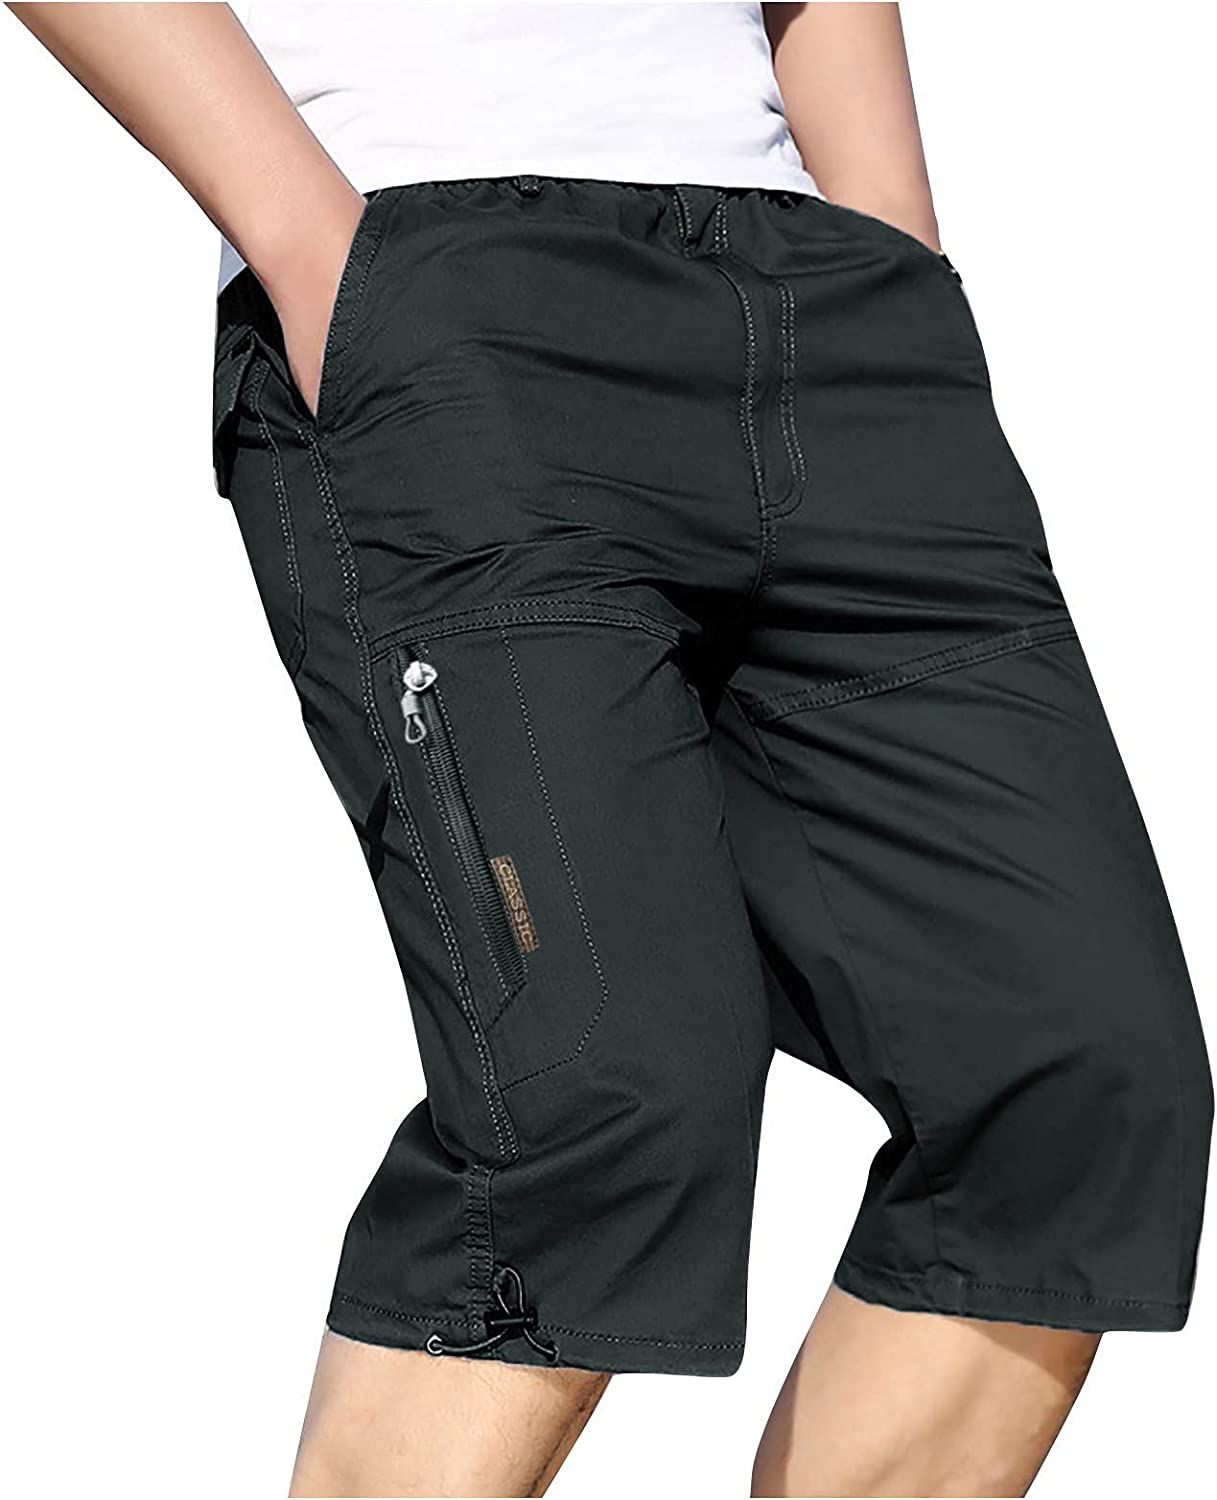 Men's Summer Casual Shorts Zipper Pockets Knee Length Sports Pants Solid Color Outdoor Fashion Cargo Shorts - Limsea